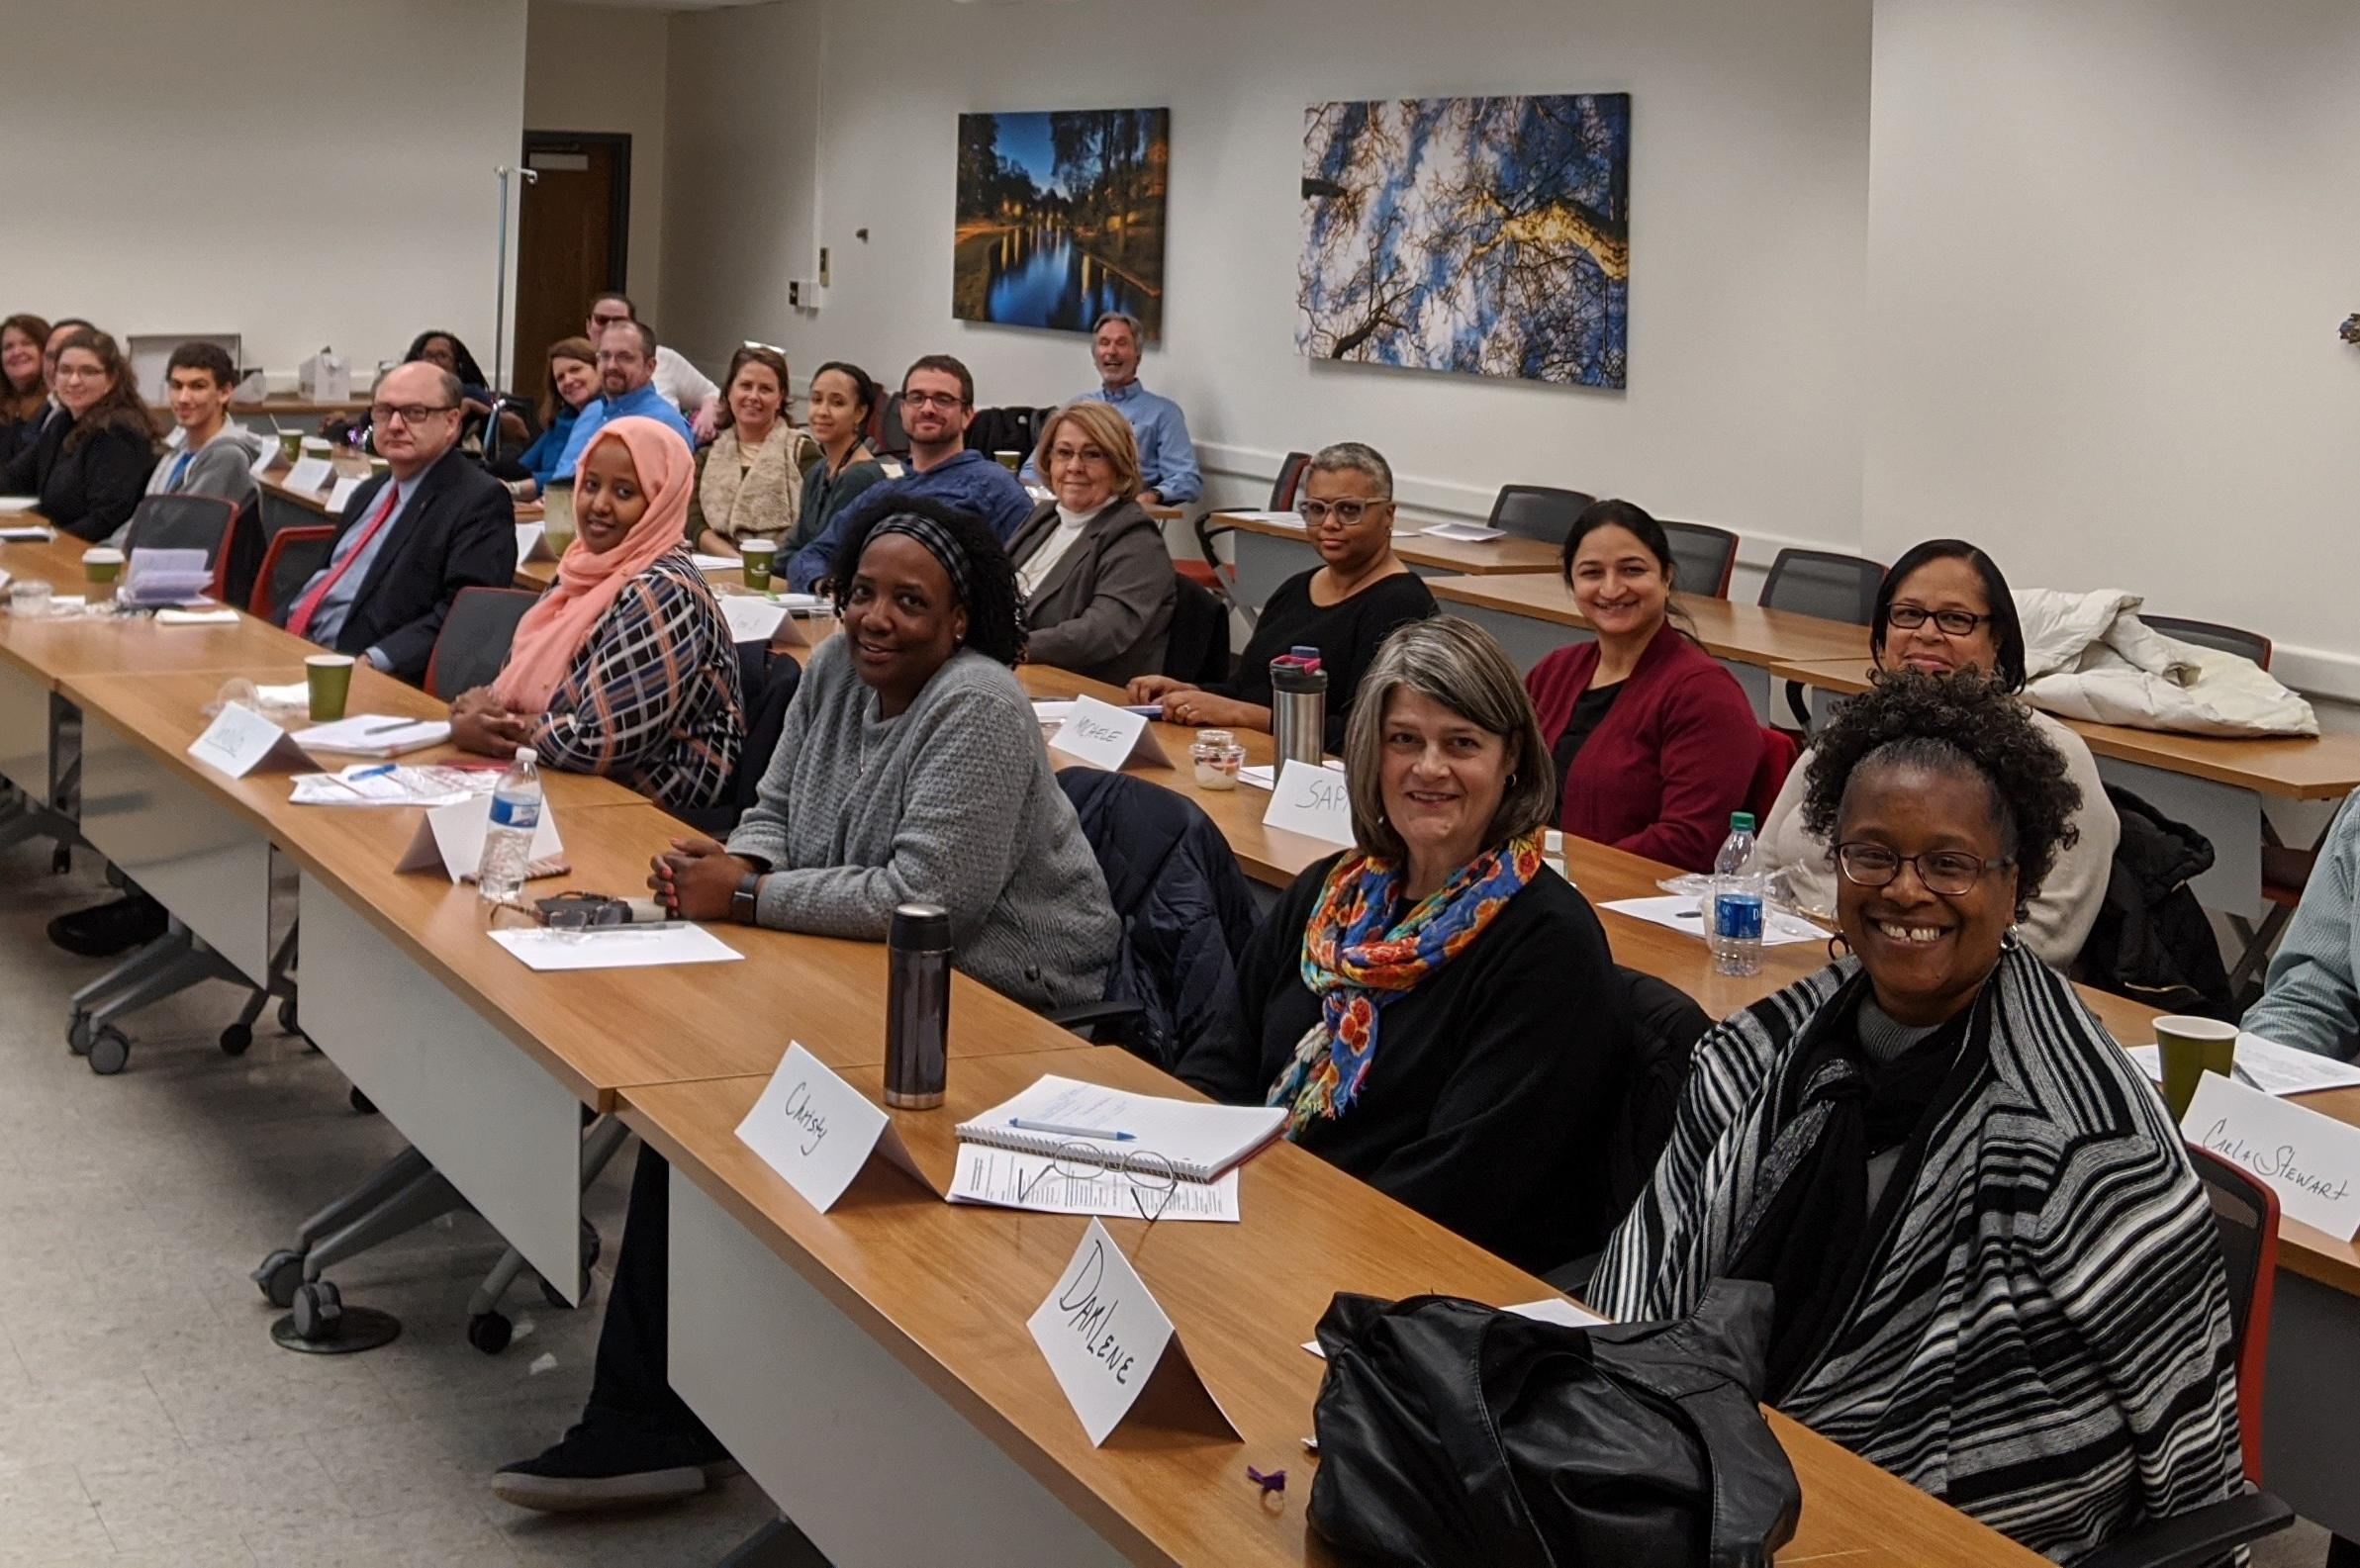 CCTS Patient & Community Peer Review Academy (photo taken on February 7, 2020 by Dr. Tanya Mathew)